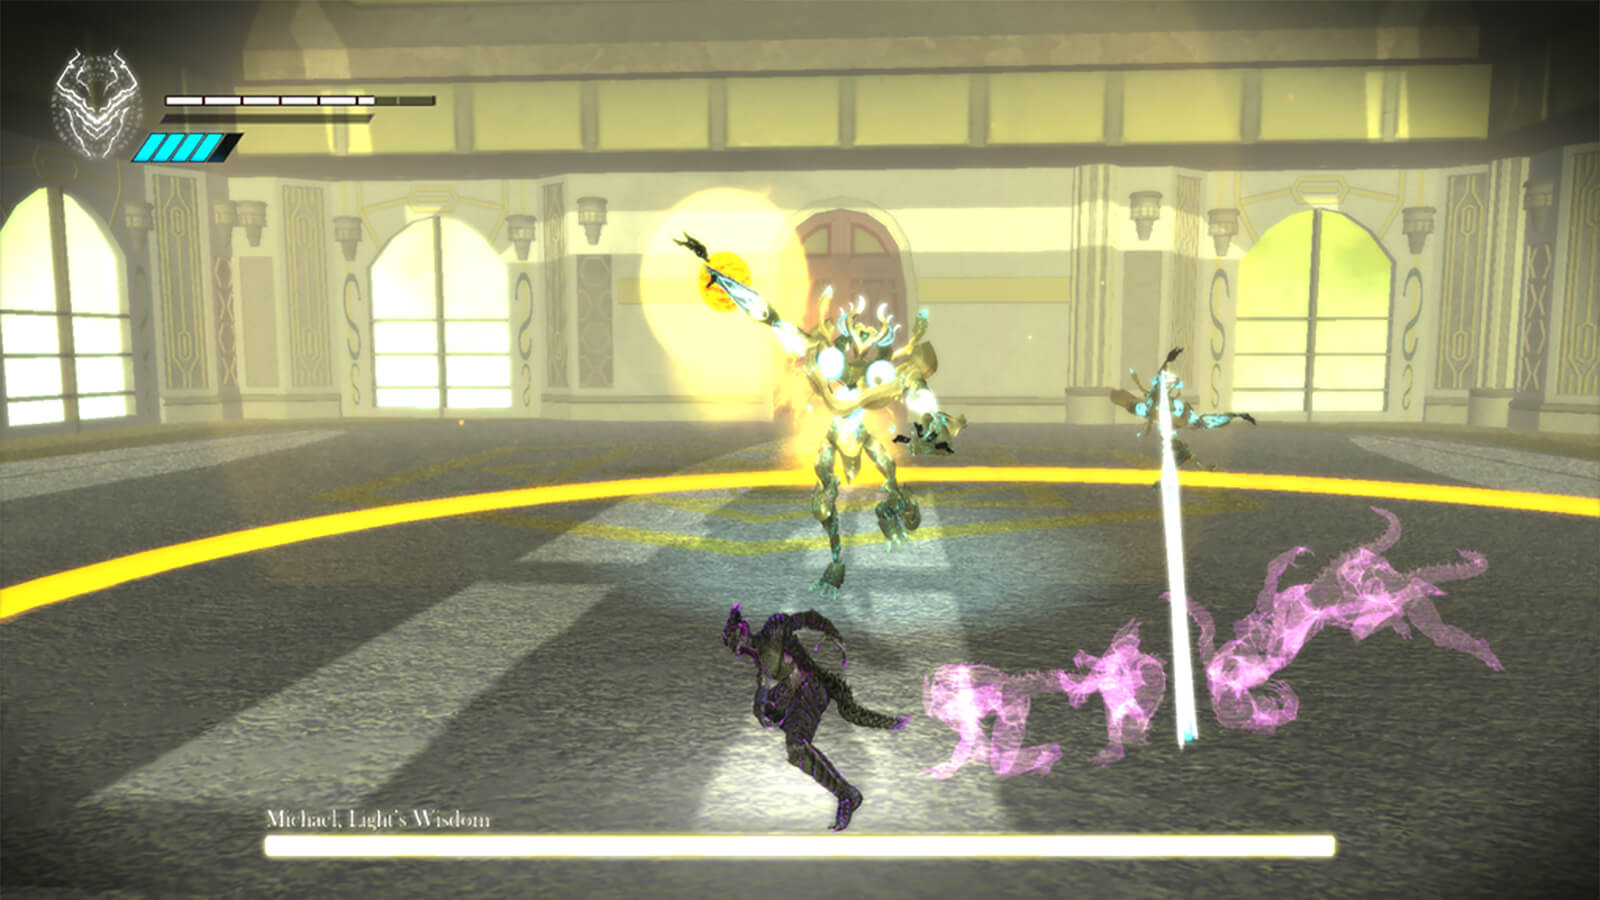 A demon-like figure in black and purple dodges in front of a tall yellow-clad monster in a brightly lit ballroom.